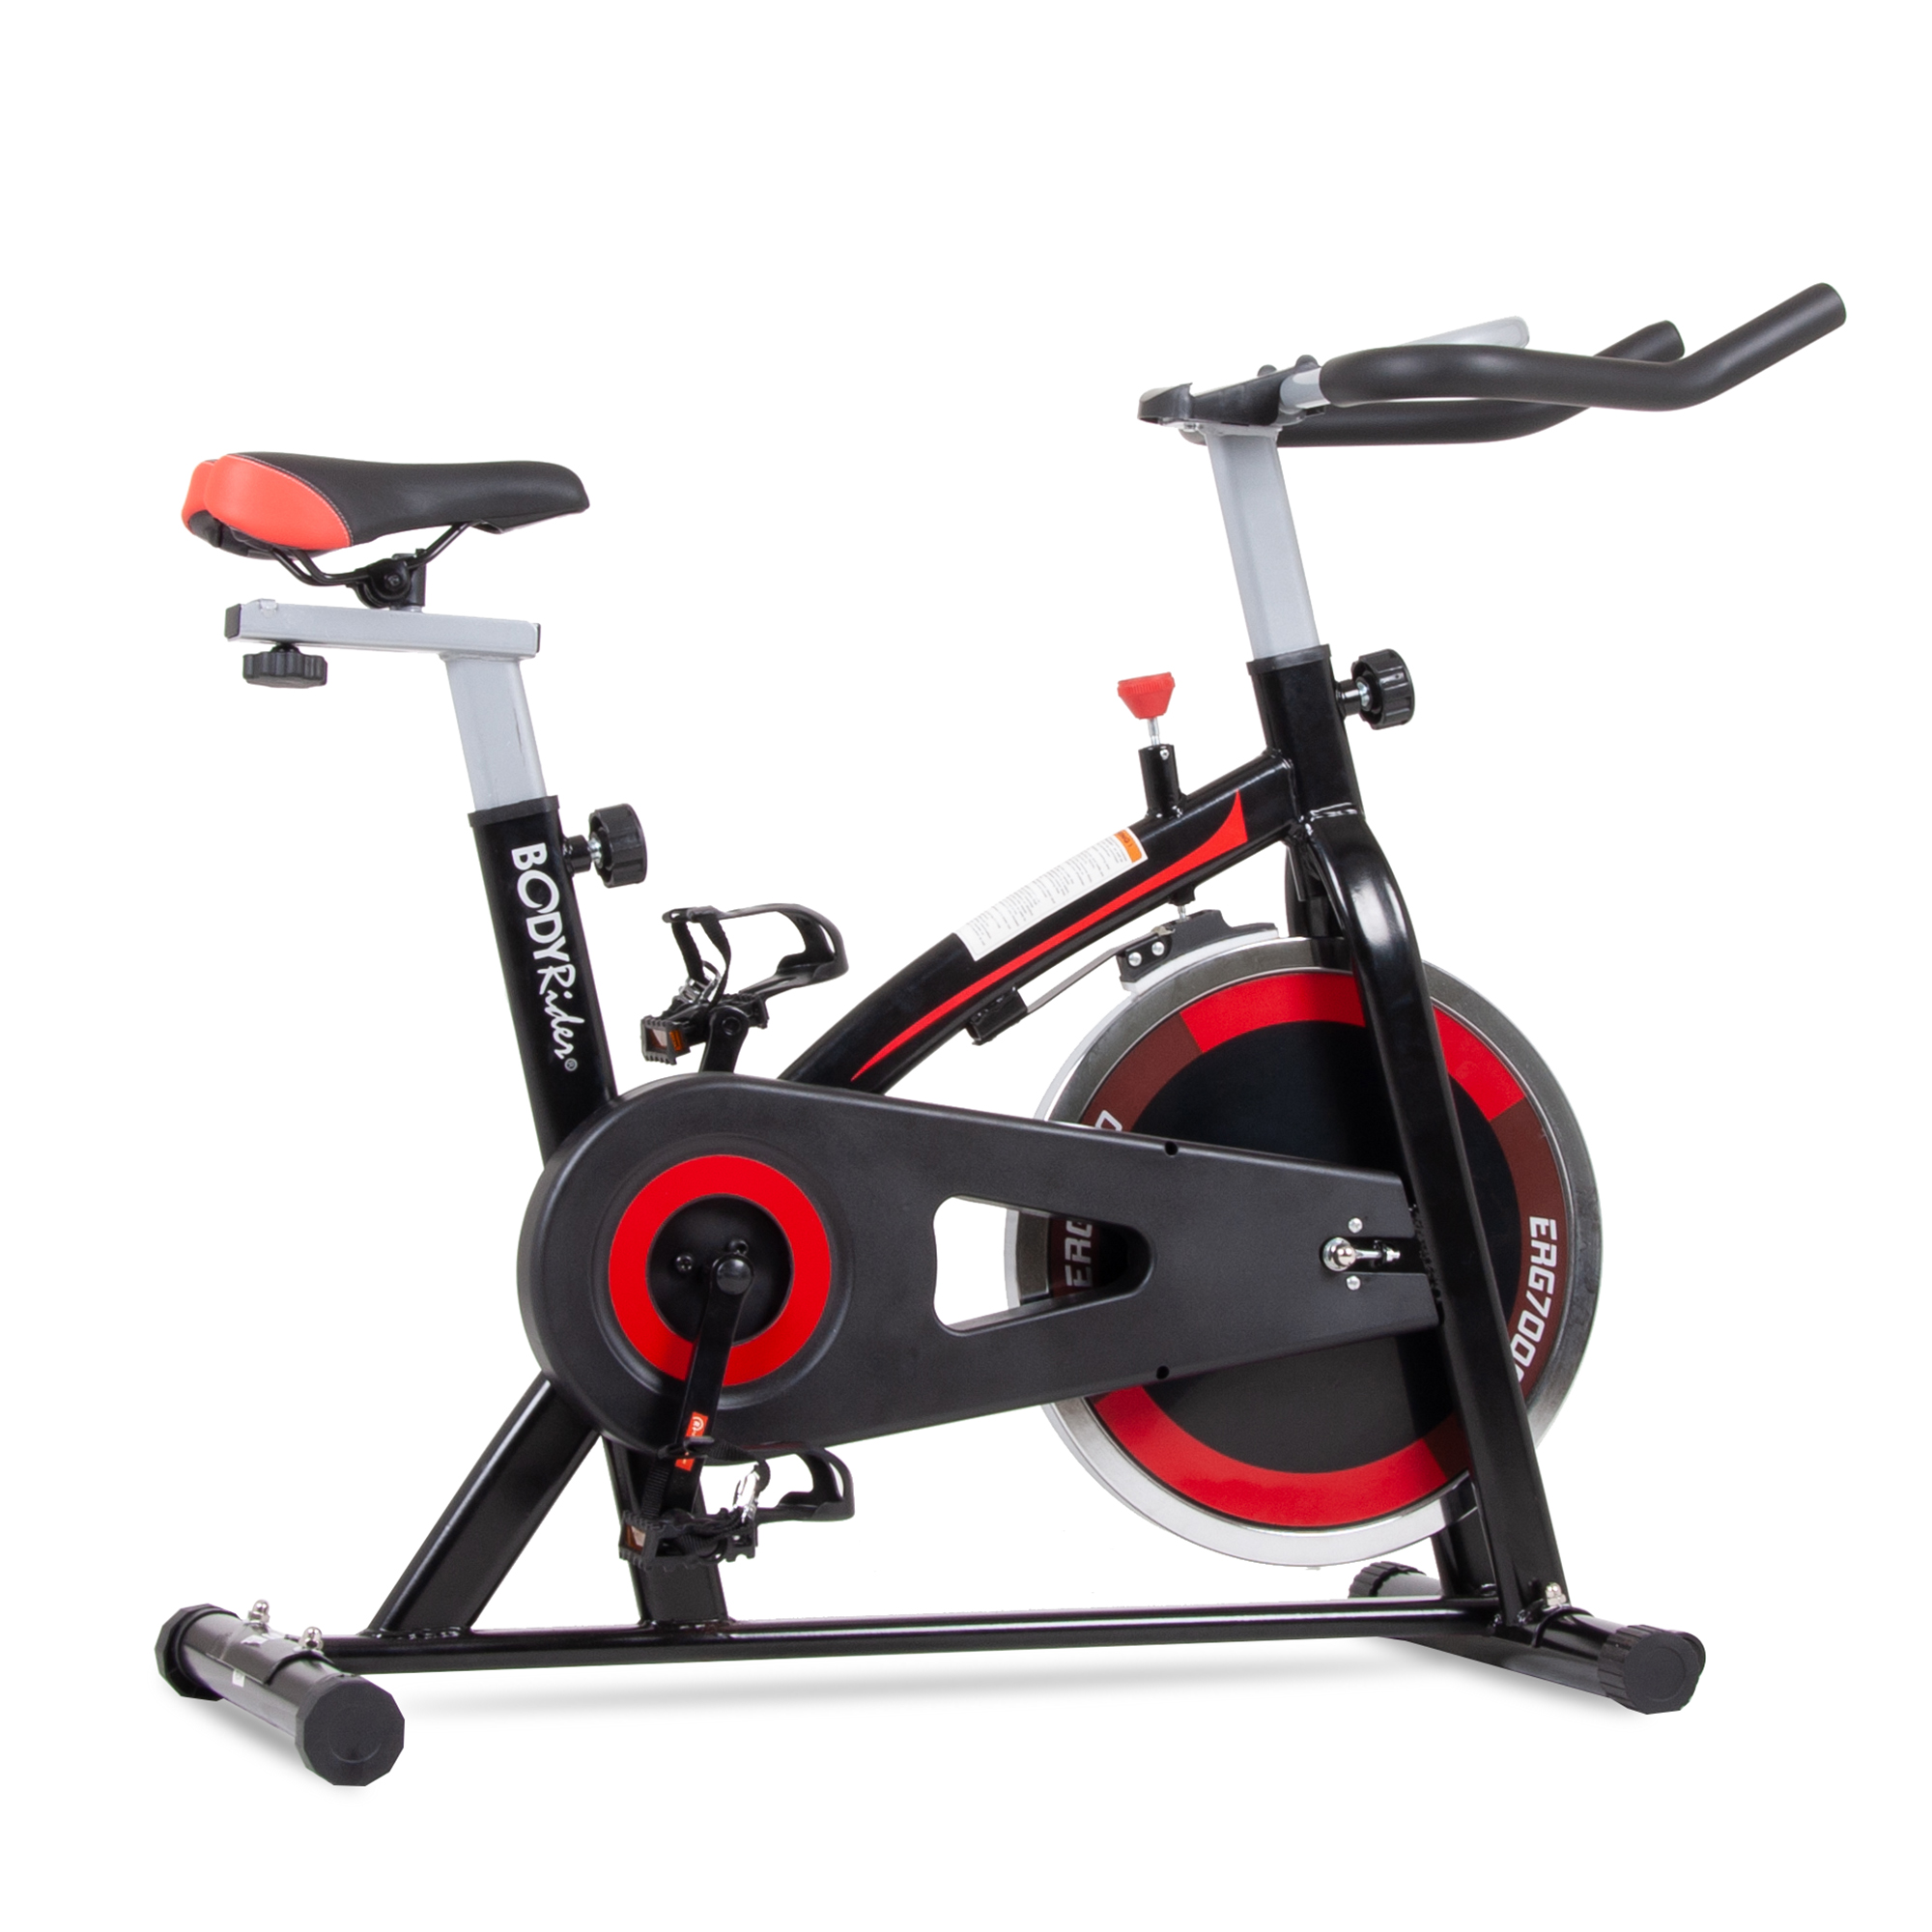 Body Rider ERG7000 Pro Cycle Trainer